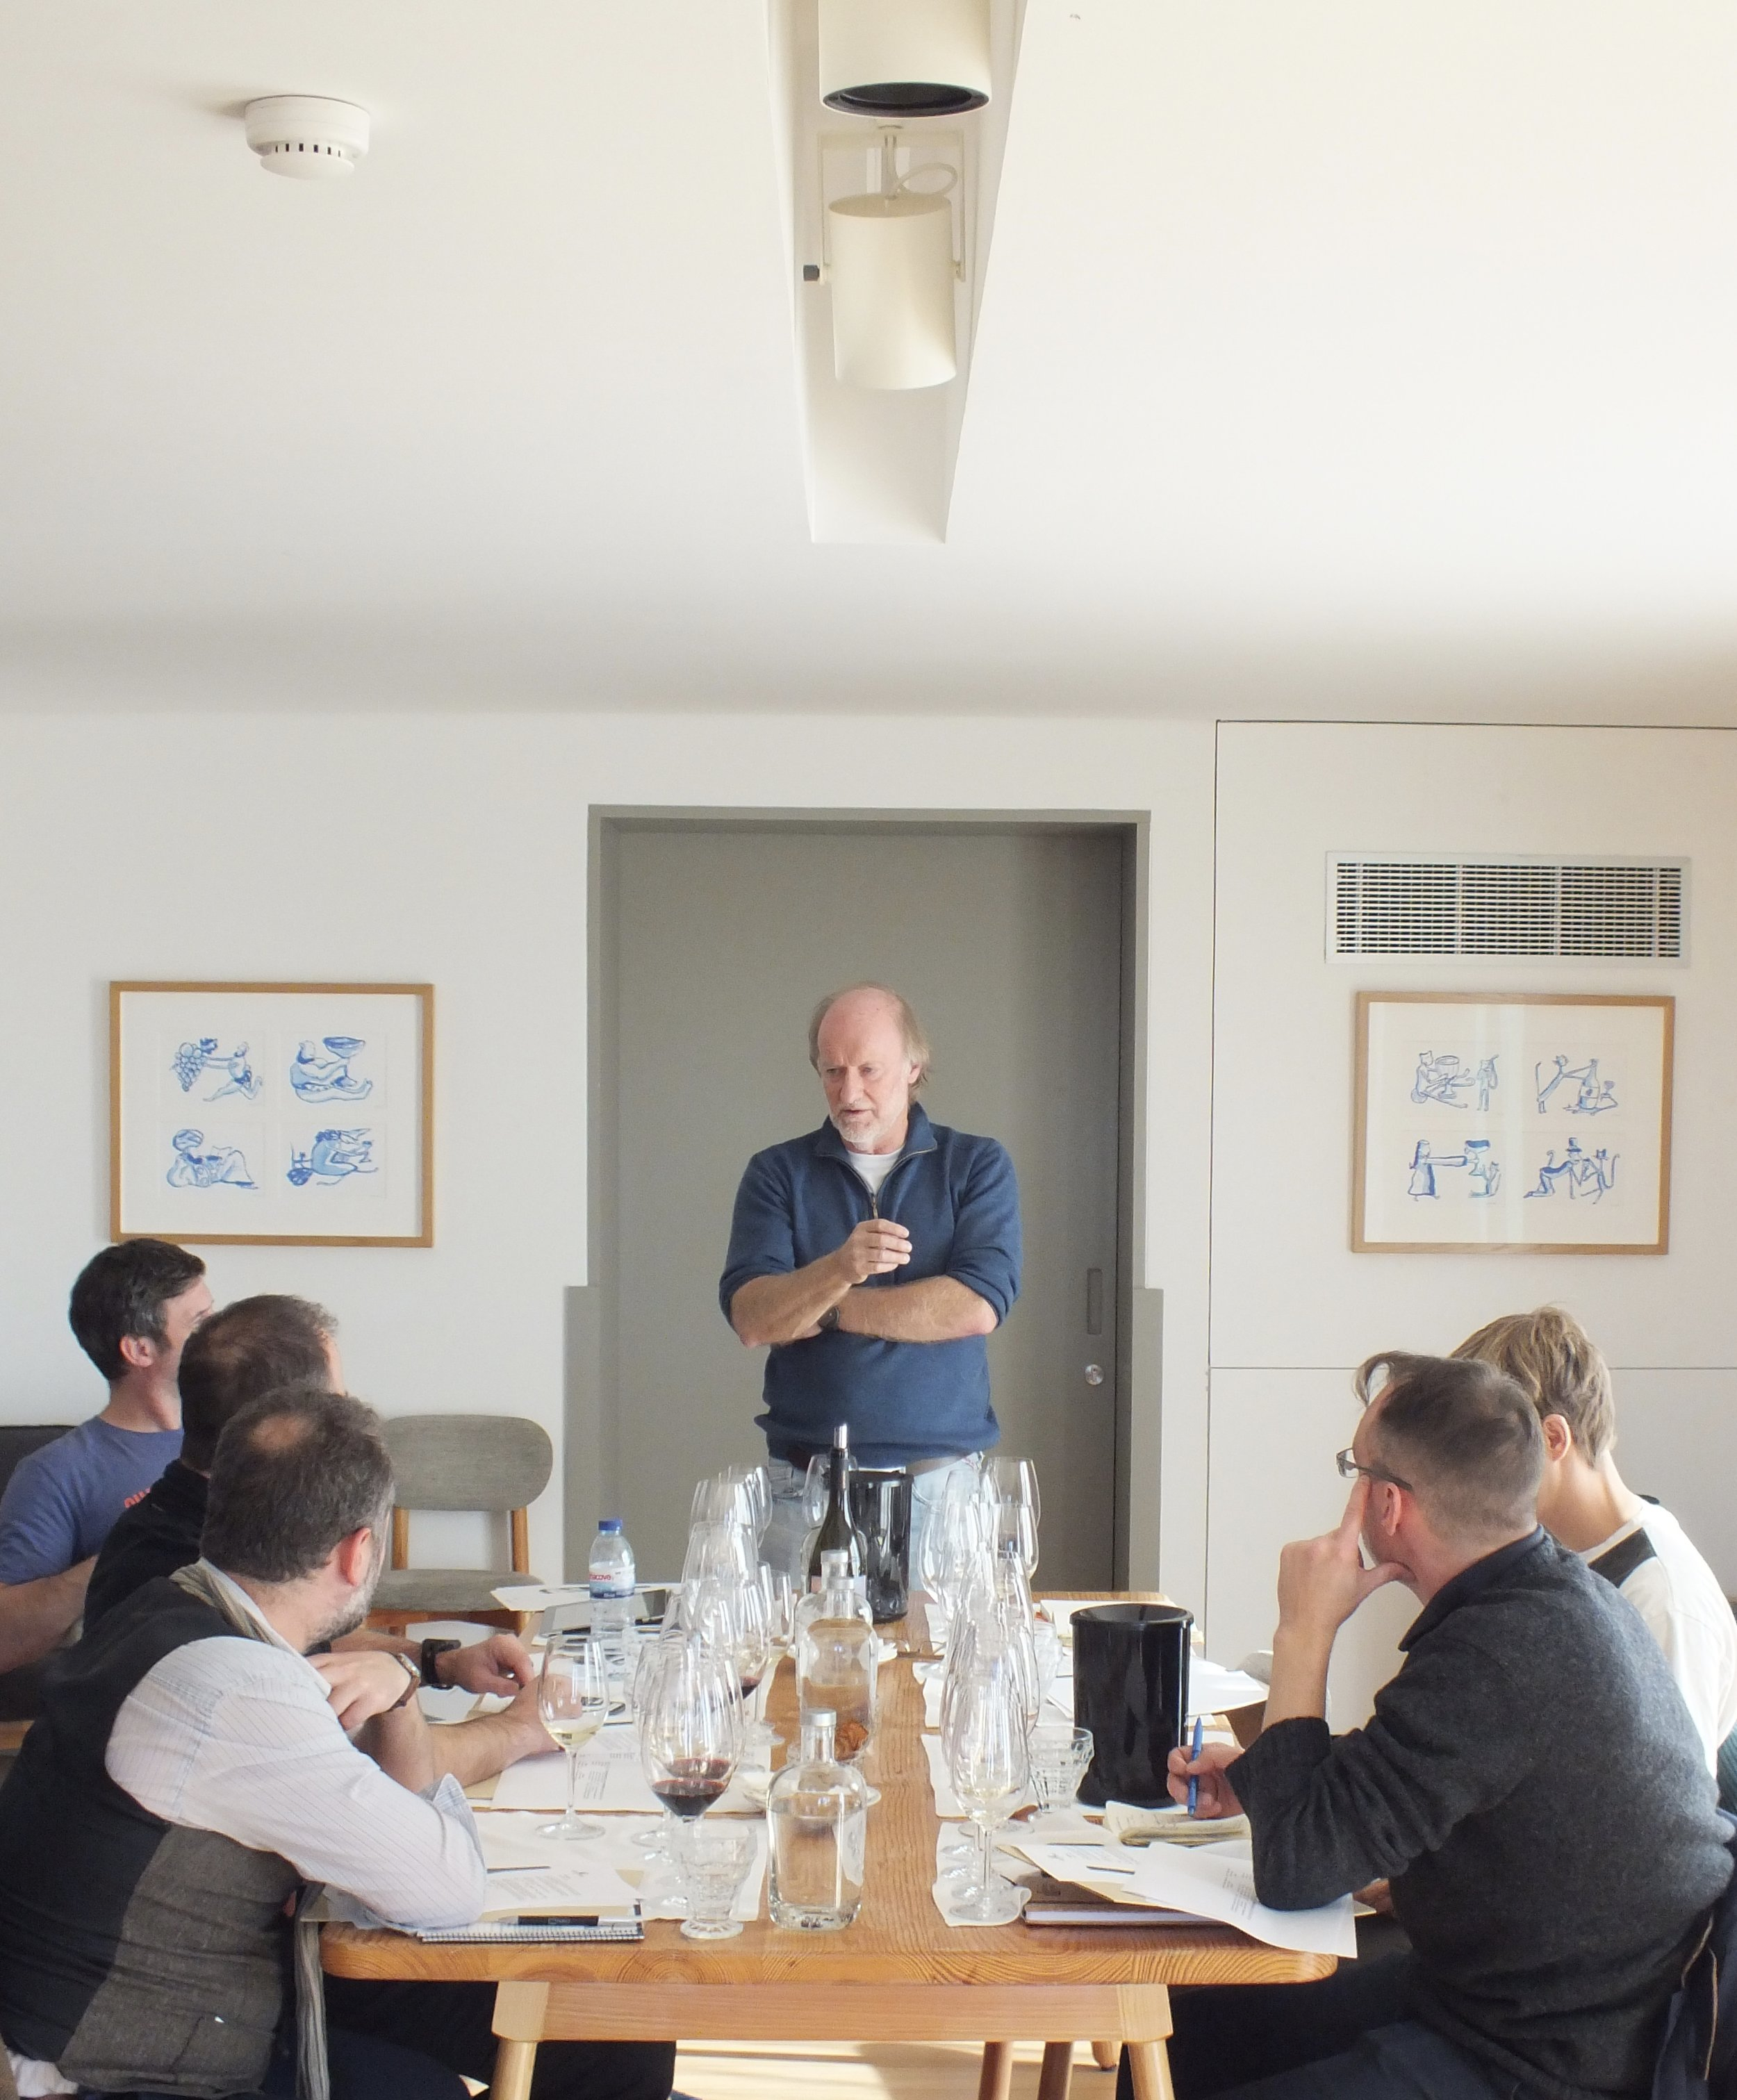 David Baverstock, Chief Wine Maker presiding over the tasting.